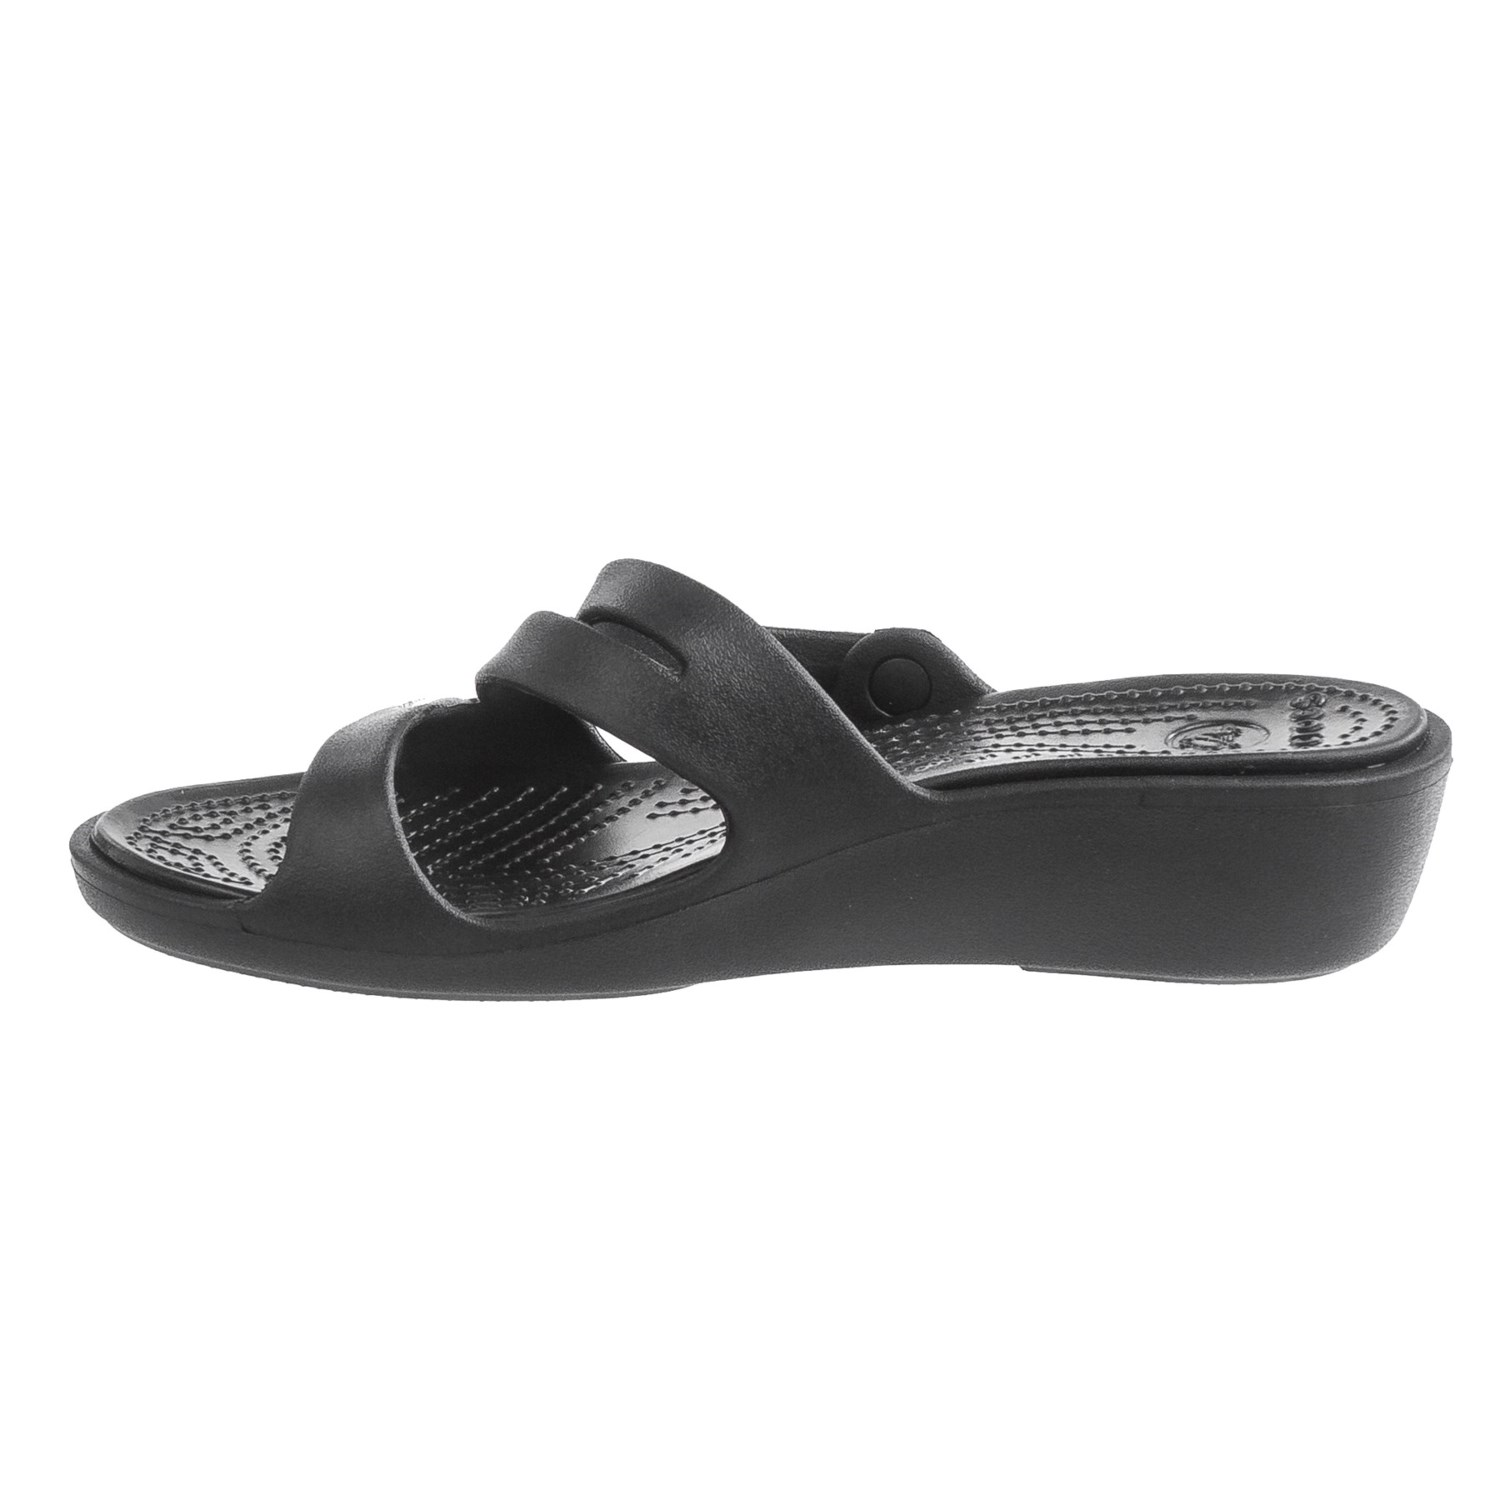 6aca09259cfa Crocs Patricia Wedge Sandals (For Women) - Save 52%